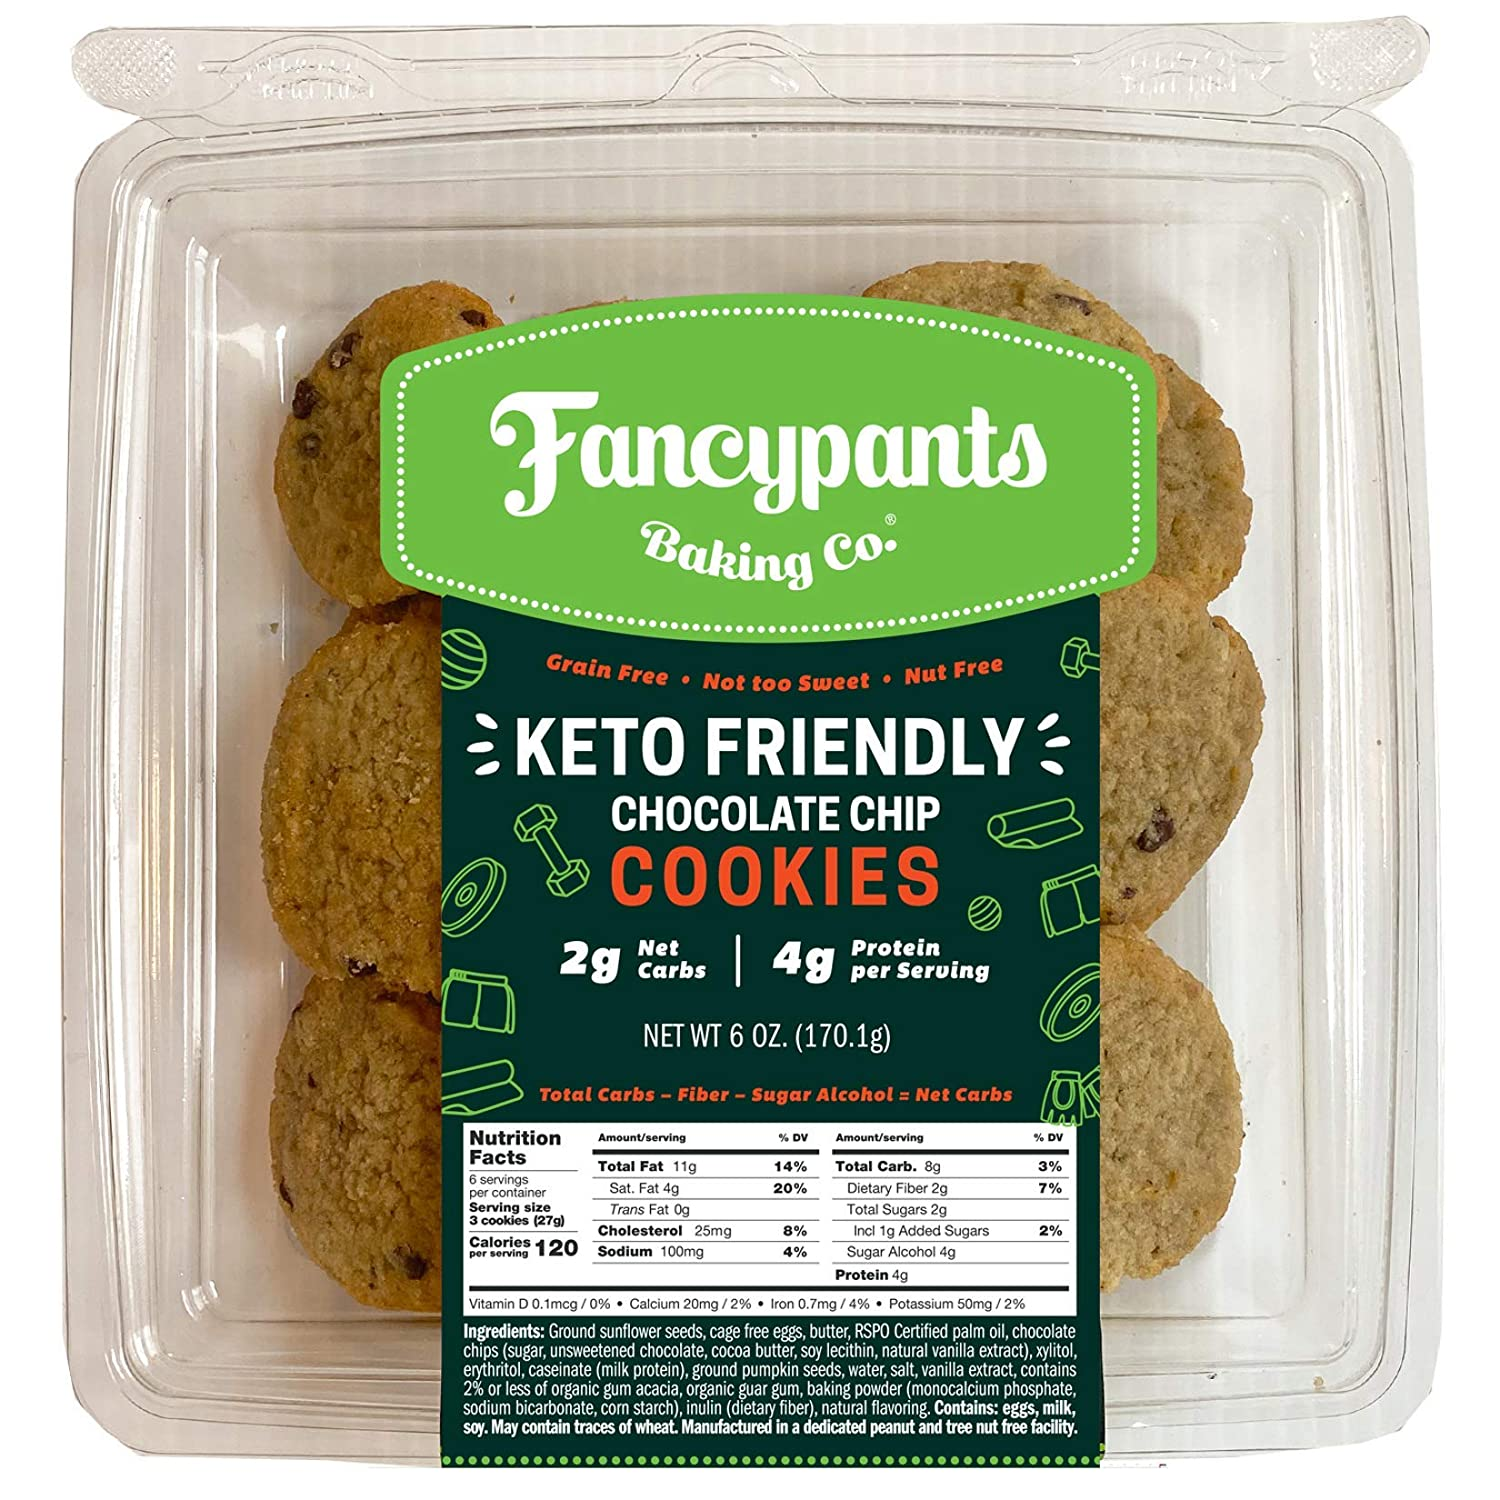 Fancypants Baking Co. Keto Chocolate Chip Chocolate Cookies: Low Carb Snack Cookies, Chocolate Chip, 3 Pack - Gluten Free & Peanut and Tree Nut Free, Dessert Sweets, Keto-Diet Food